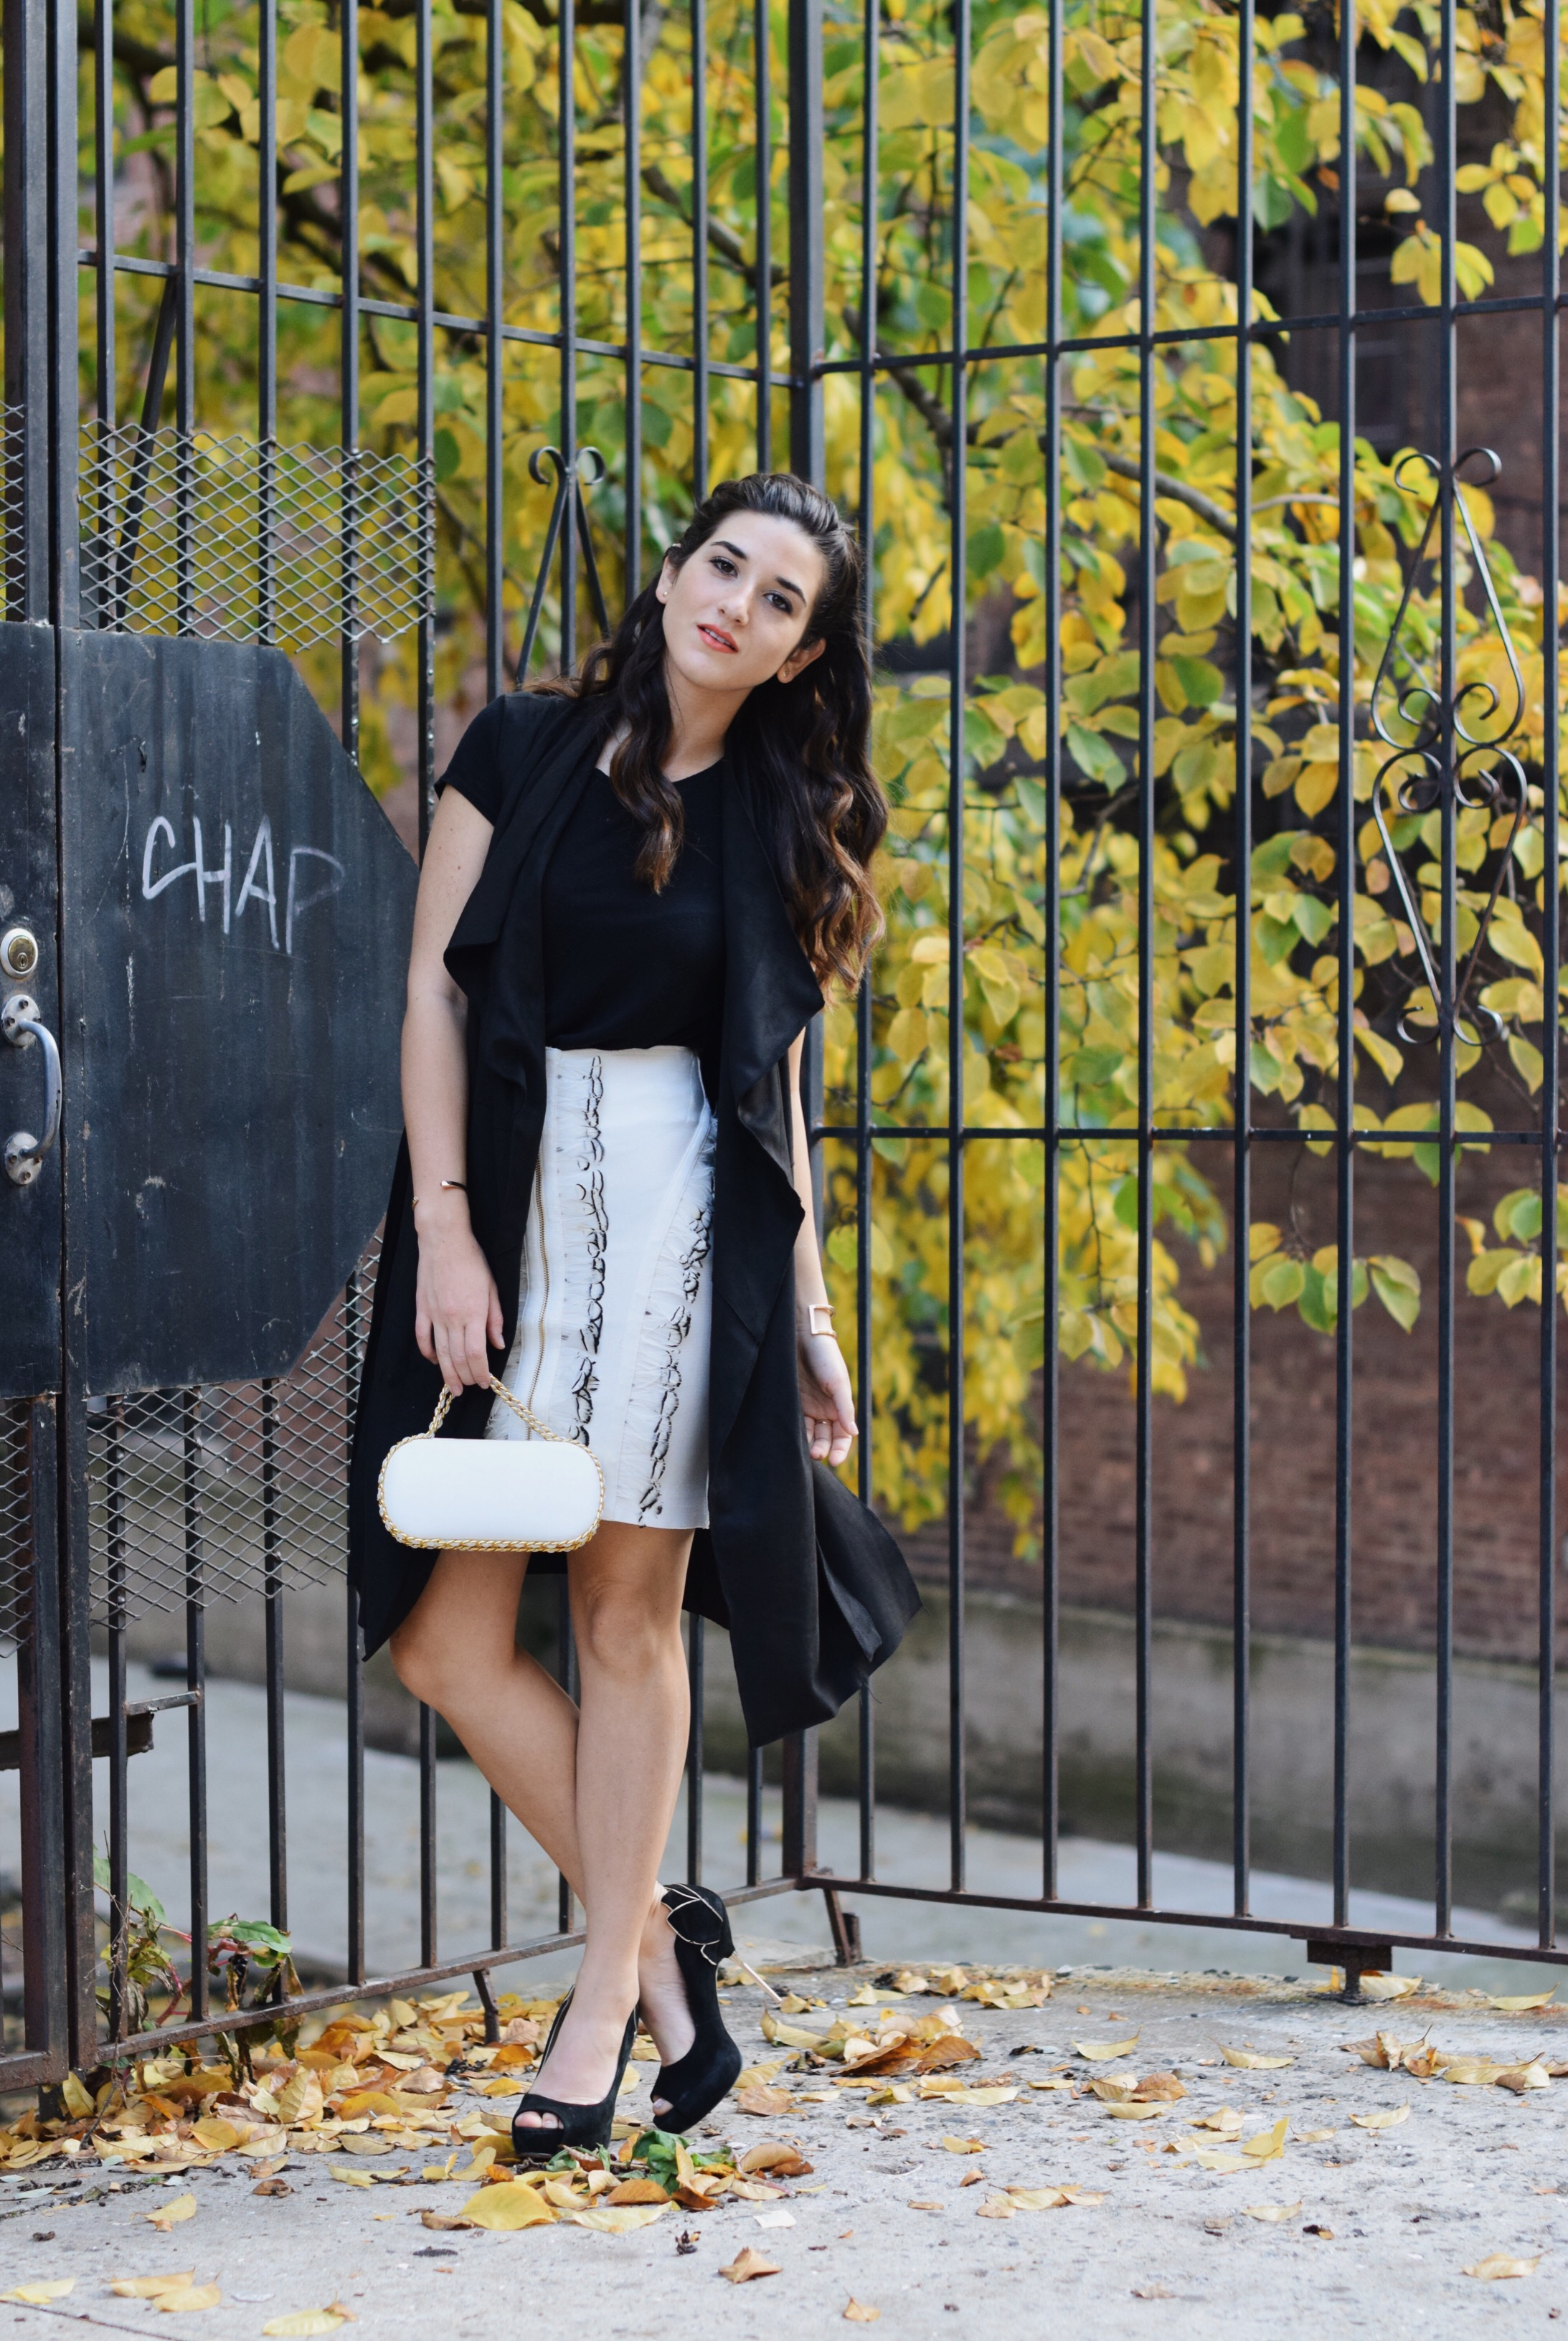 White Feather Skirt Long Black Vest Wow Couture Louboutins & Love Fashion Blog Esther Santer NYC Street Style Blogger Photoshoot Hairstyle Inspo Heels Gold Black Tee Zara Outfit OOTD Beauty Braid Winter Fall Girl Women Model Erin Dana White Minaudiere.JPG